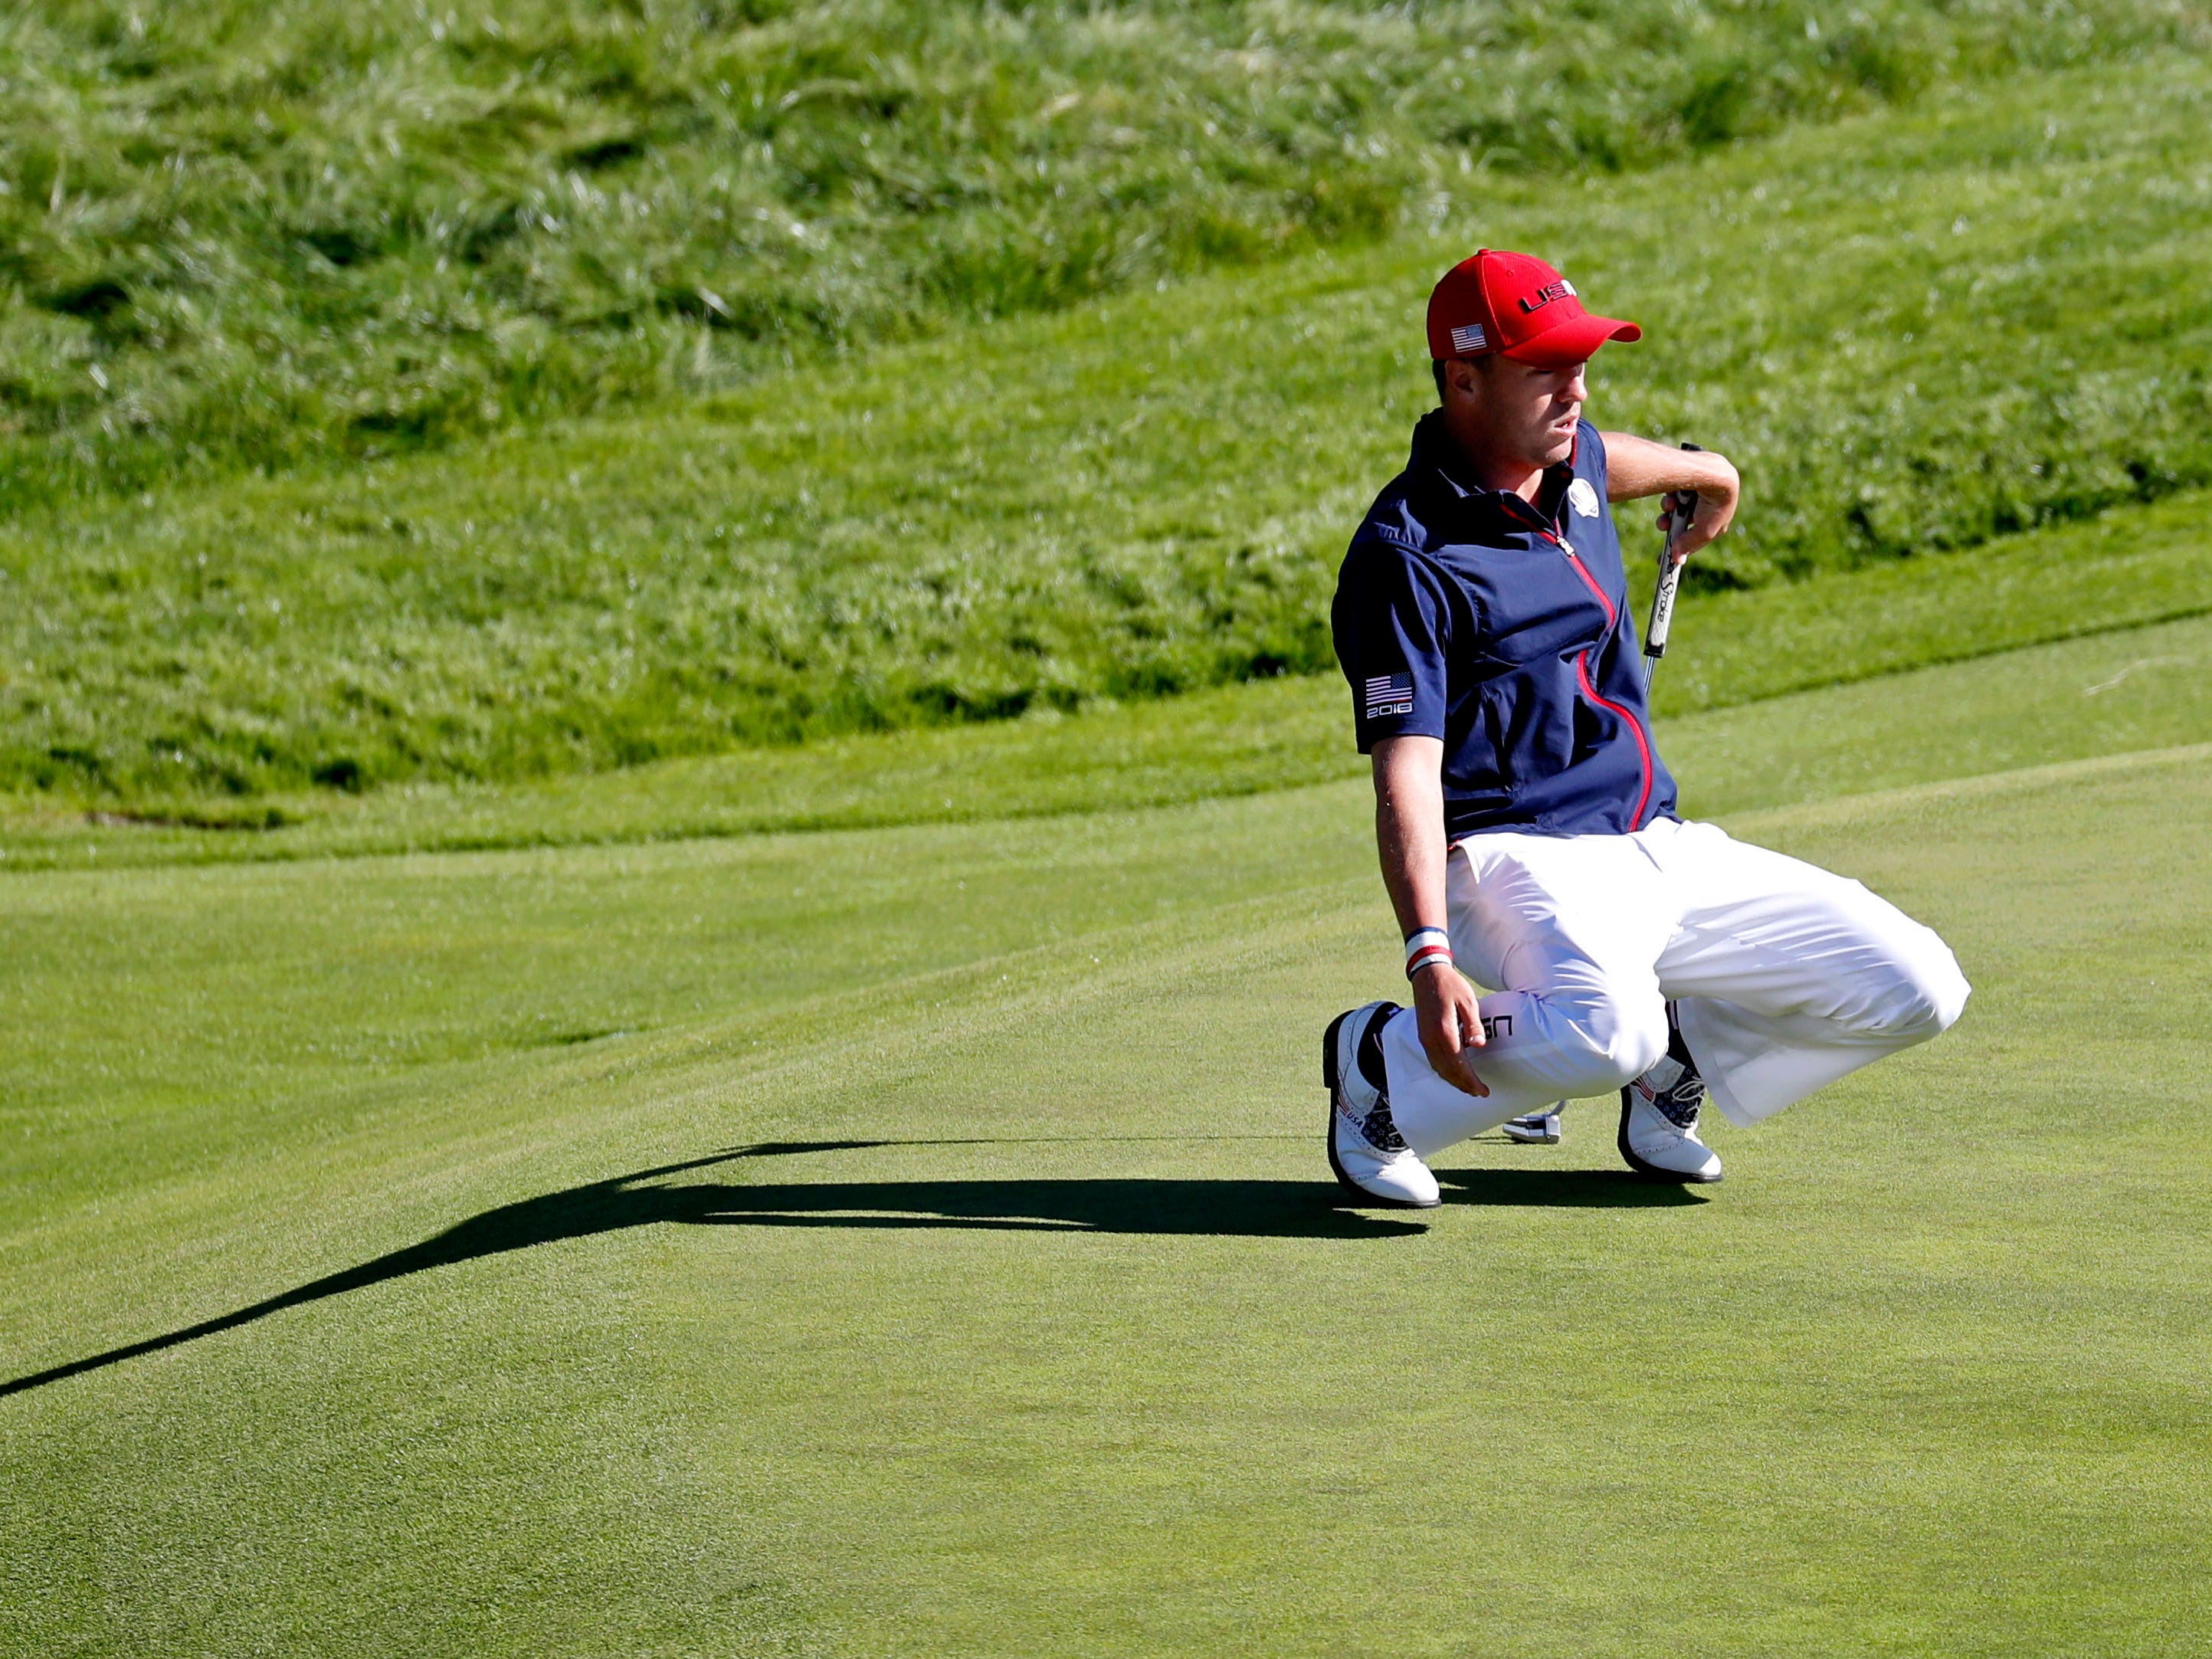 USA golfer Justin Thomas reacts to his putt on the ninth green during the Sunday singles matches.